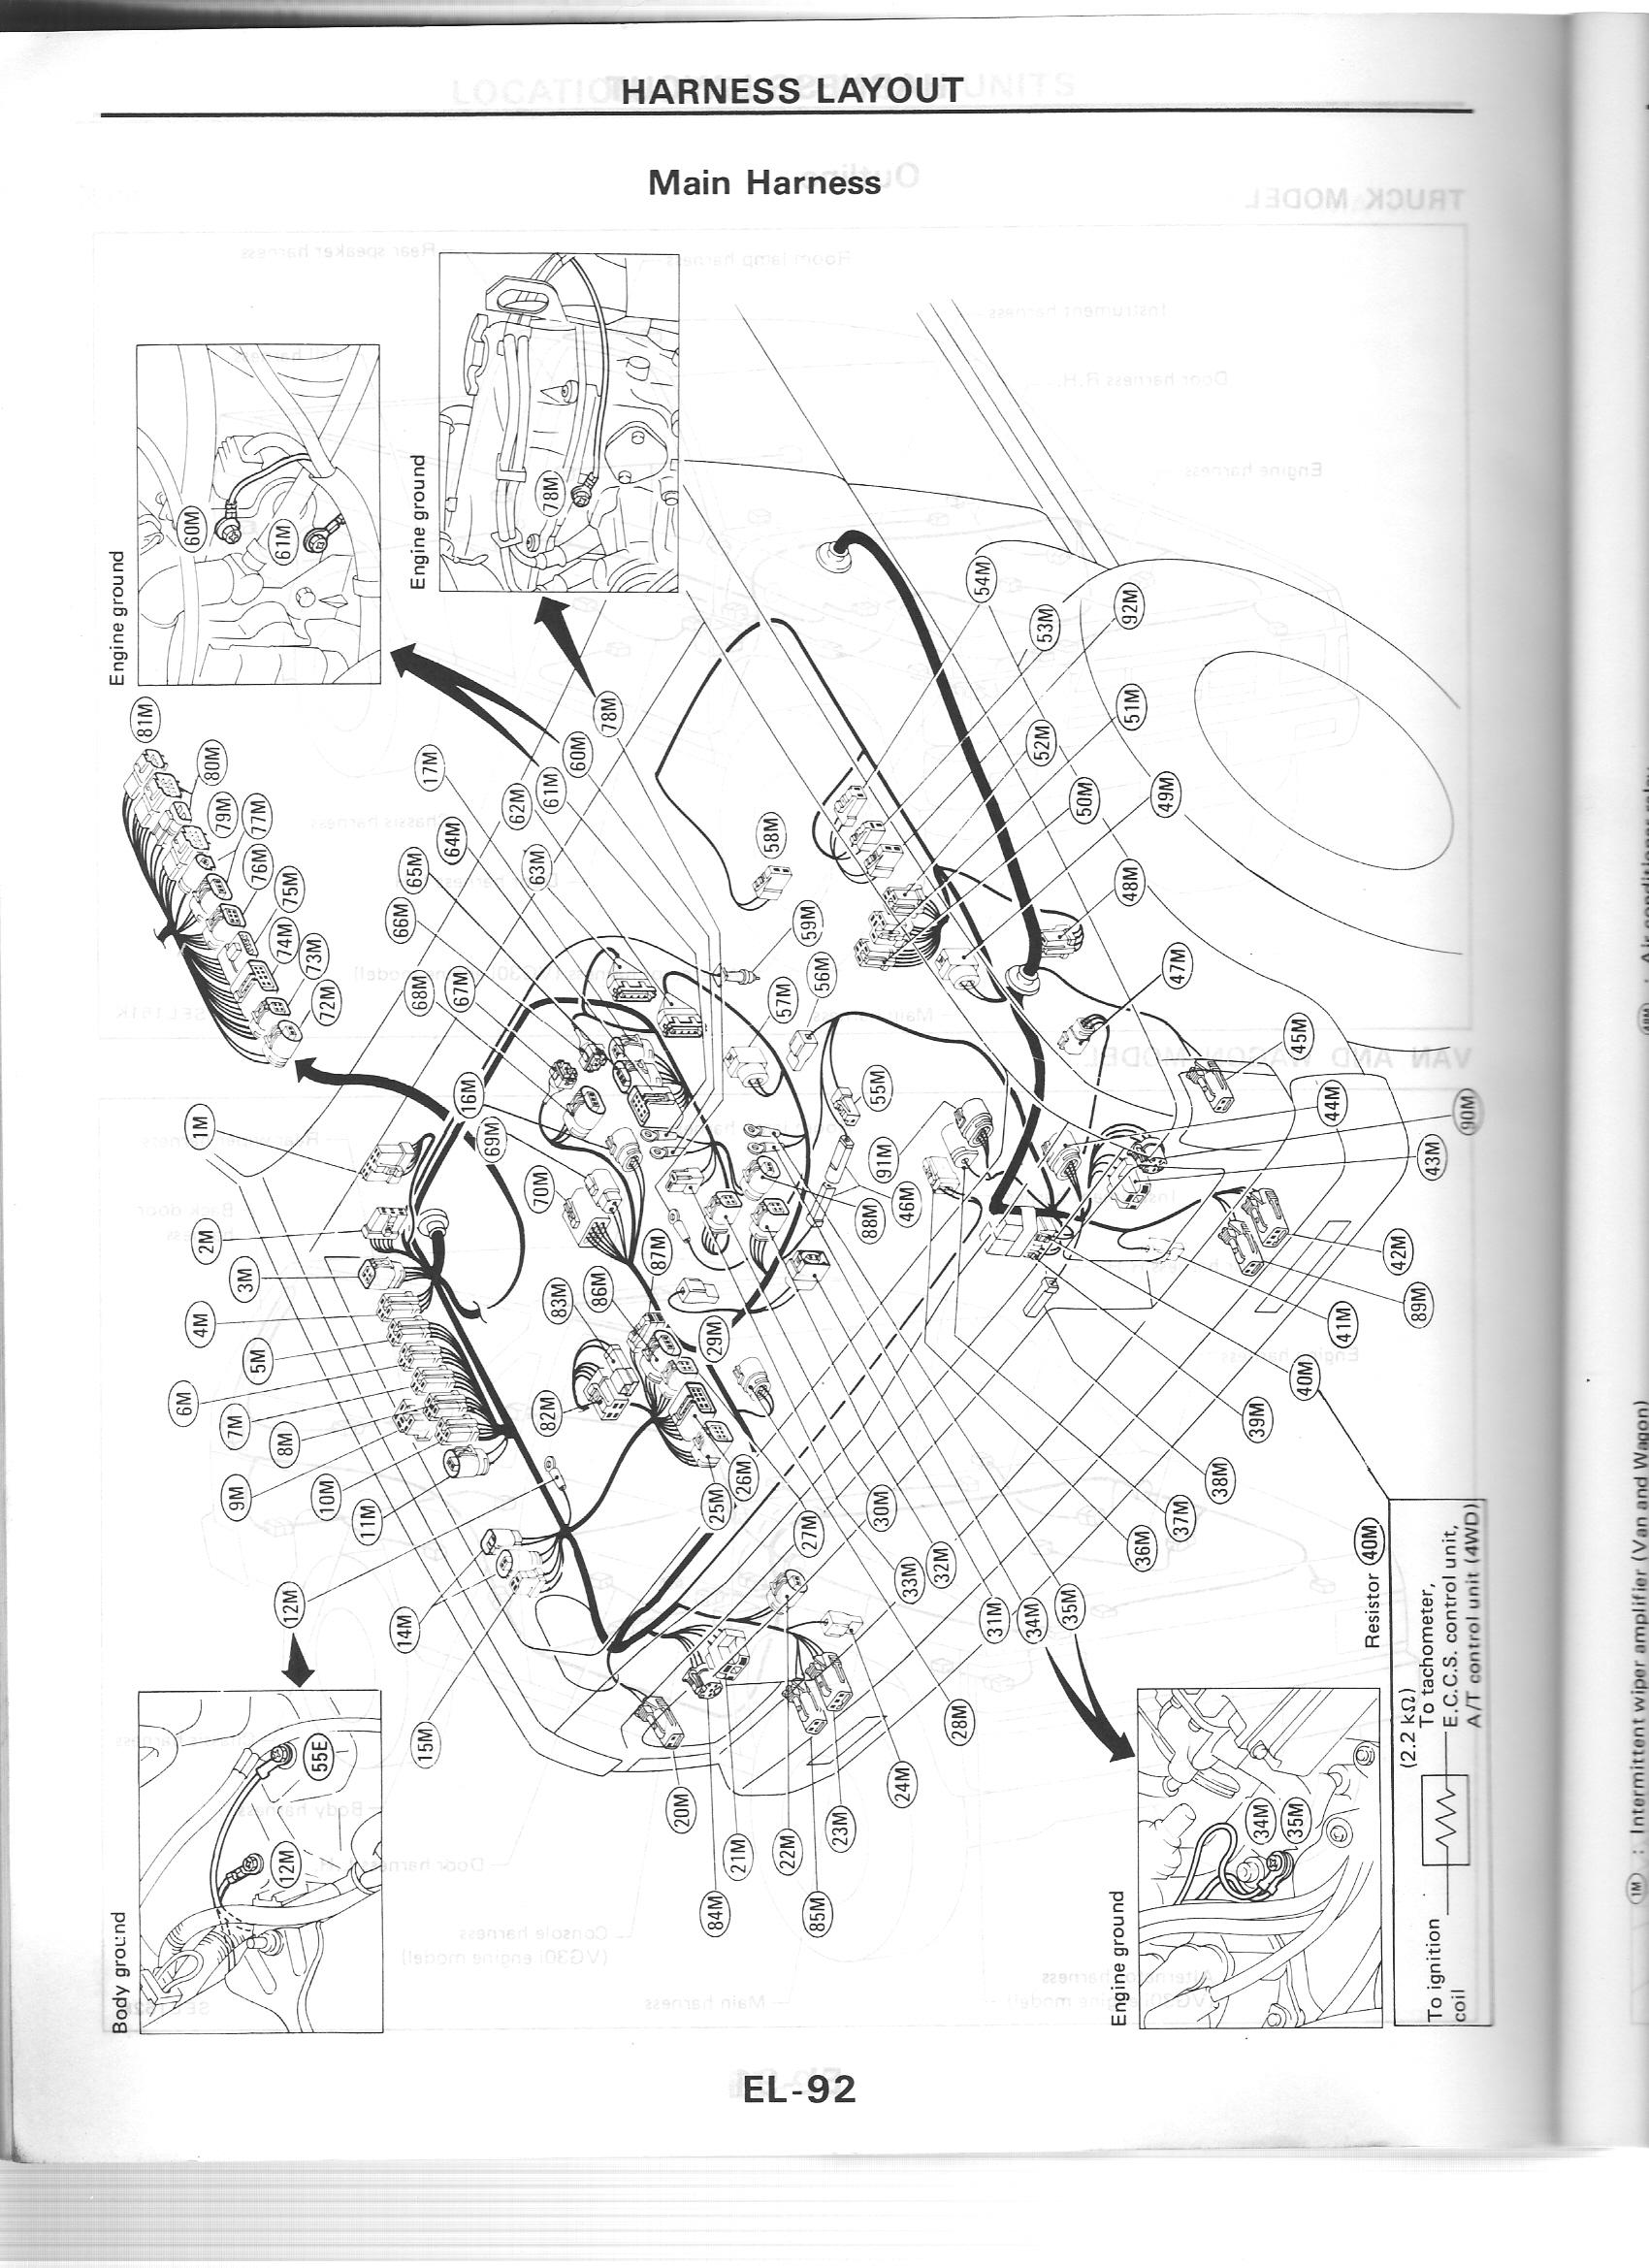 Nissan Nut Vg30e Engine Wiring Diagram Harness Connecters 88 D21